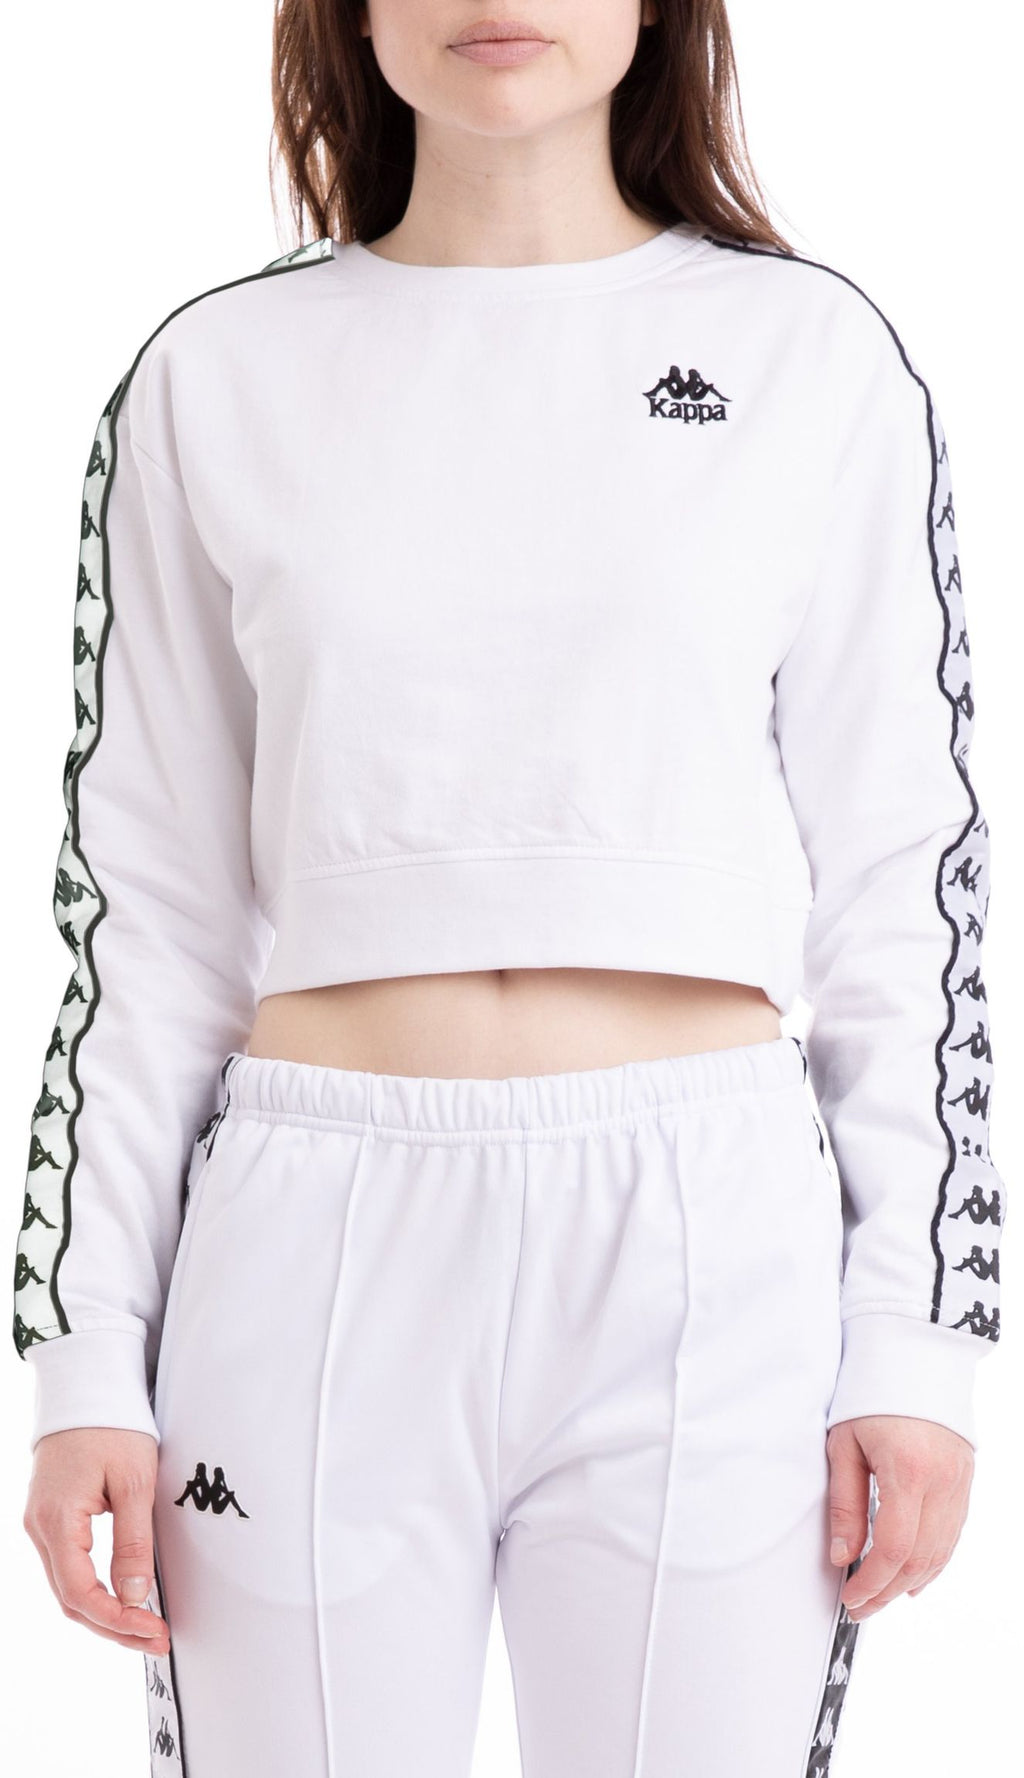 Kappa AYS Cropped Sweatshirt White